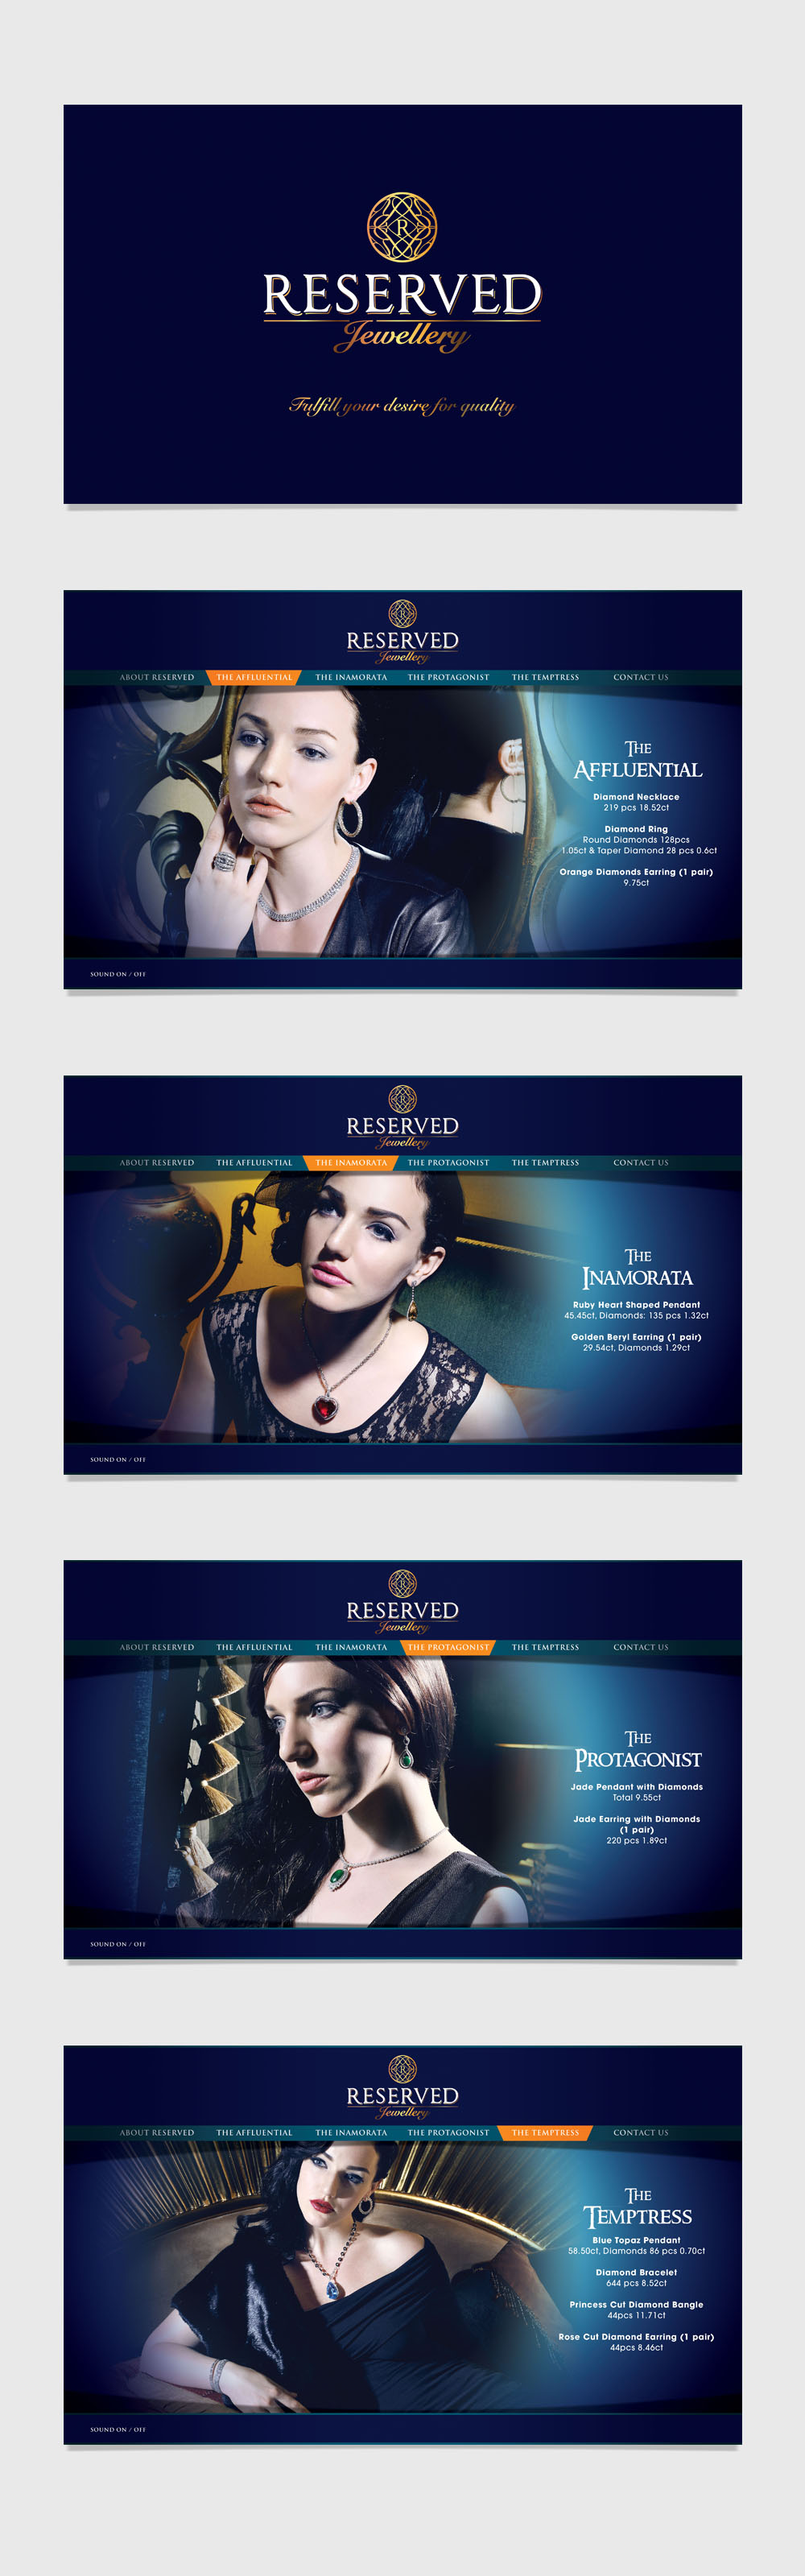 Reserved Jewellery Branding Campaign